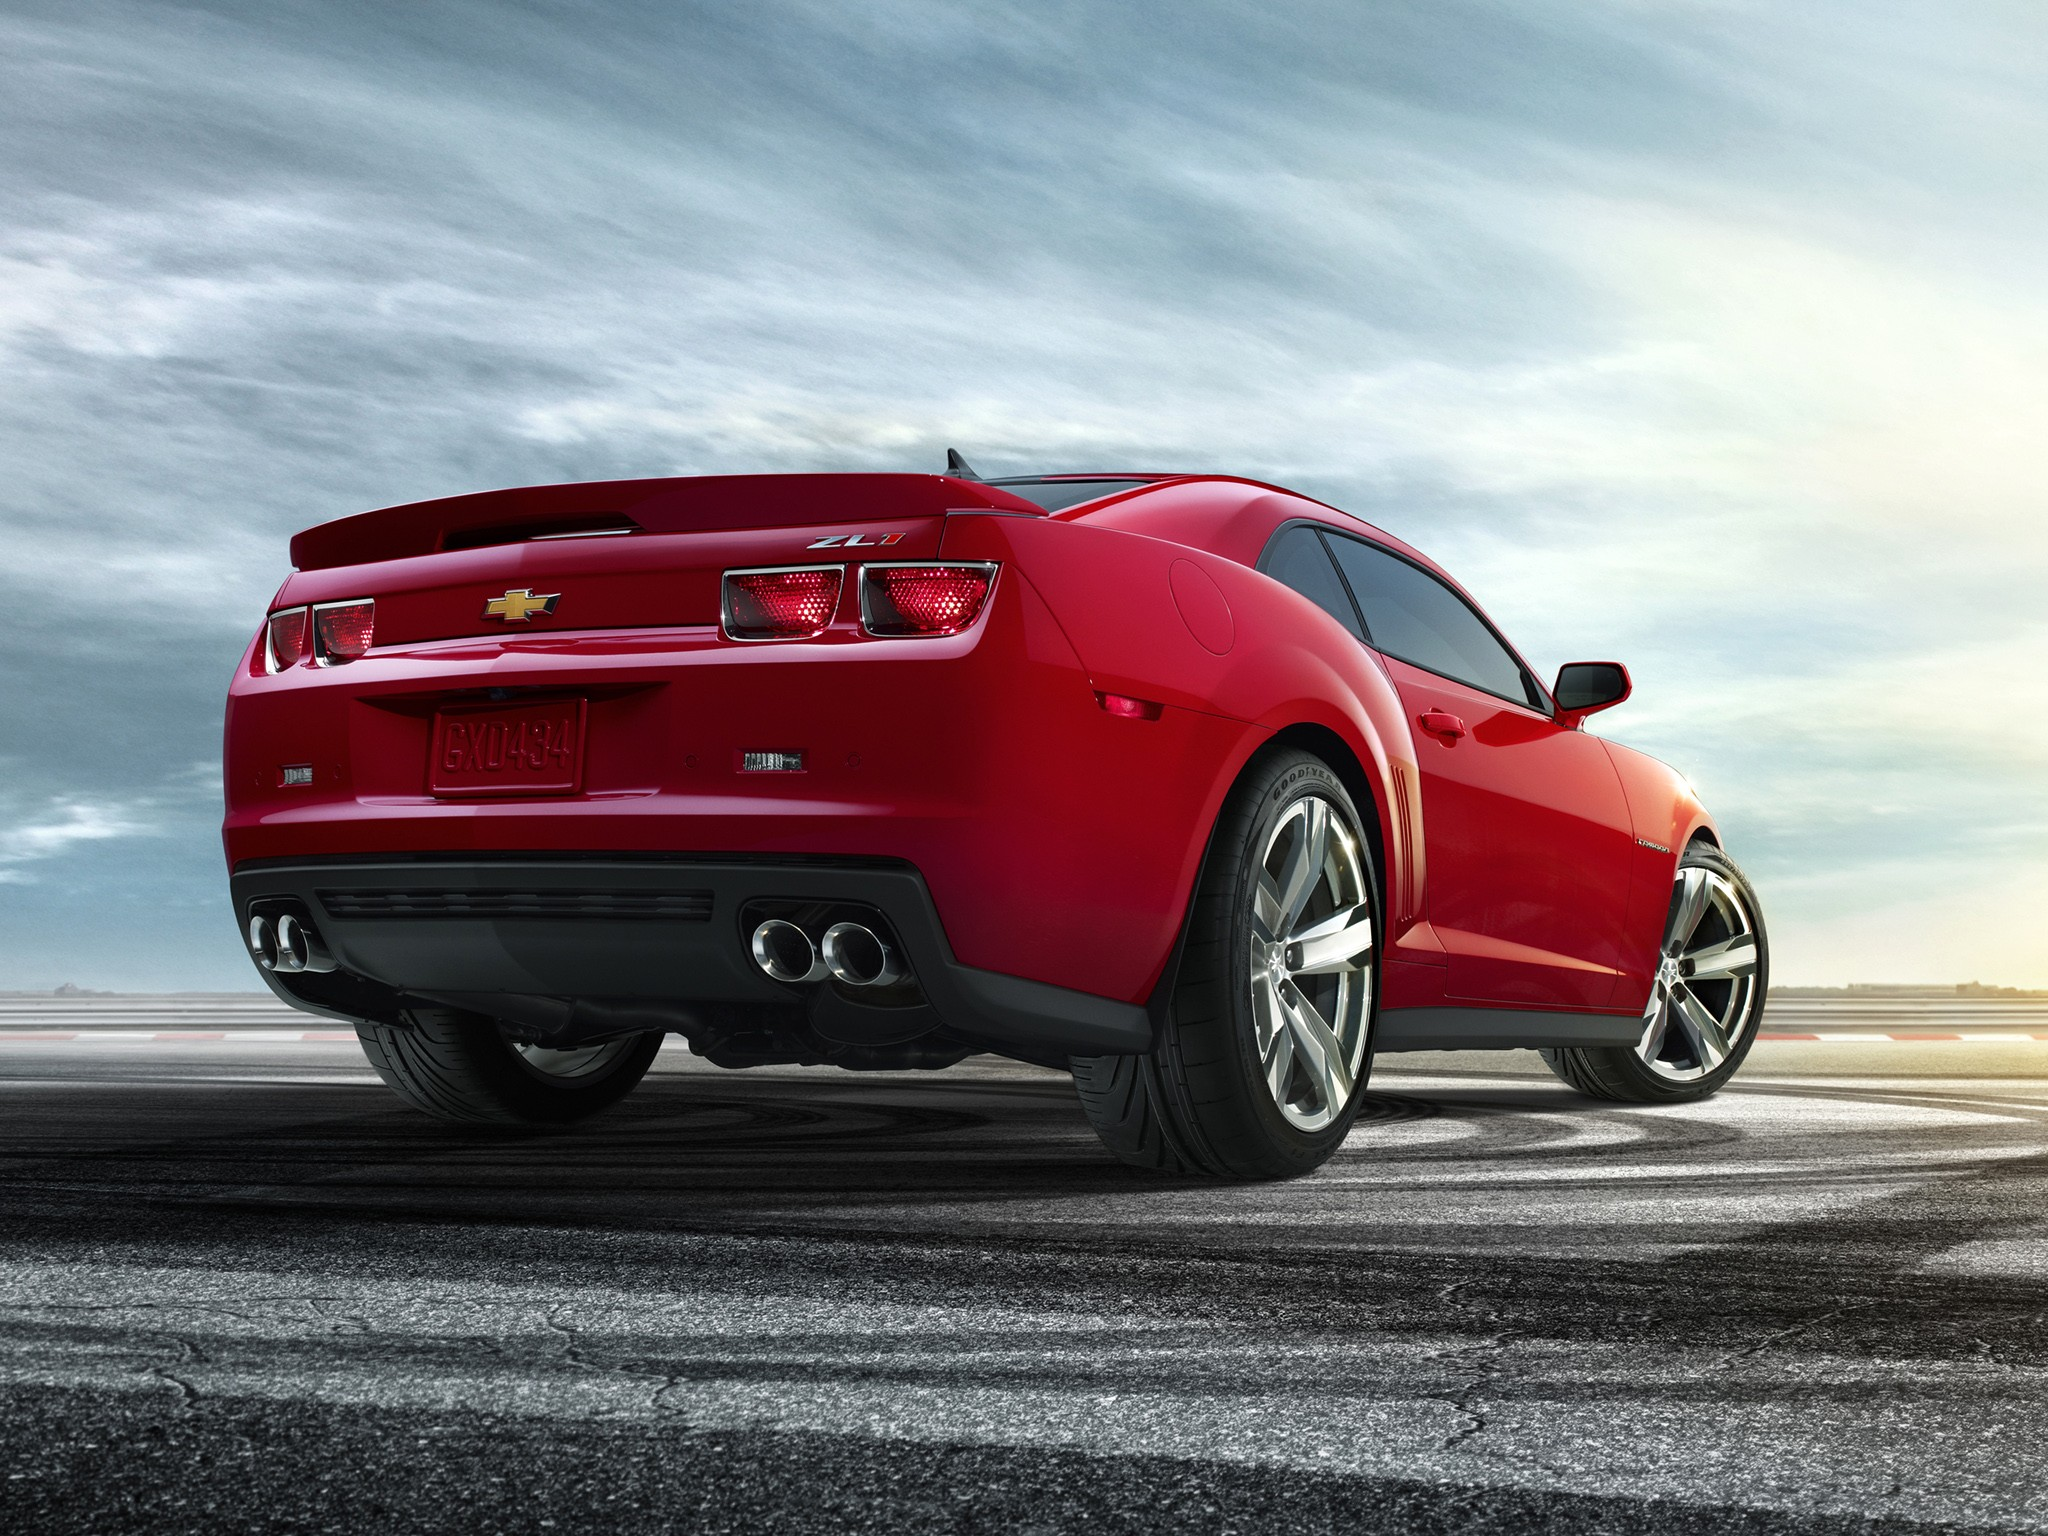 American Muscle Cars Hd Wallpapers Download Chevrolet Camaro Zl1 2012 2013 2014 2015 2016 2017